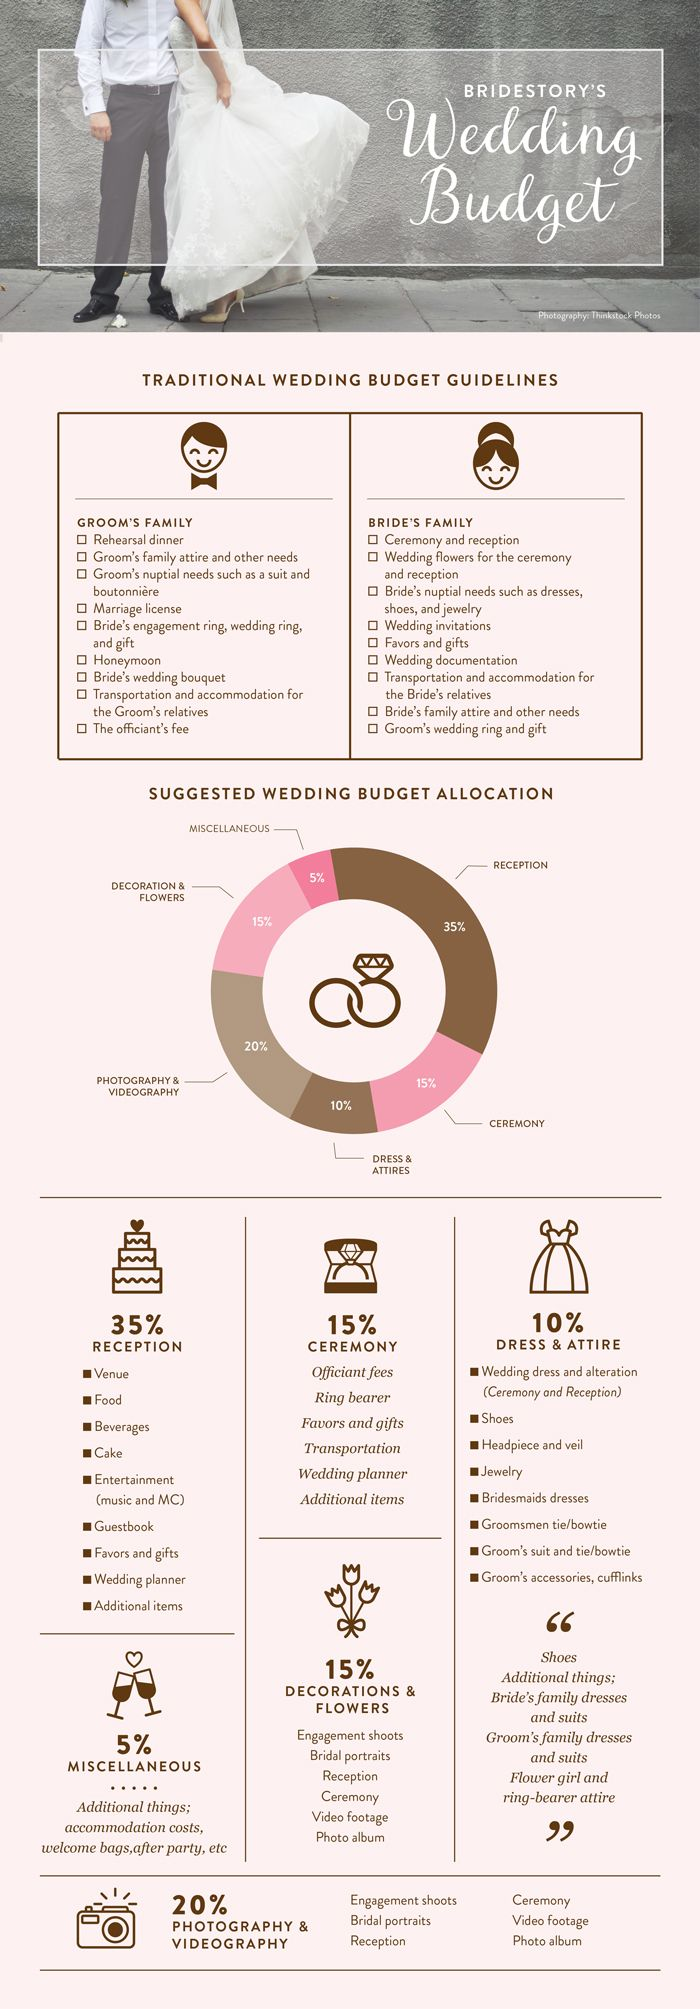 The How, What and Who of Wedding Budget Plan - Bridestory Blog | Read more here http://www.bridestory.com/blog/the-how-what-and-who-of-wedding-budget-plan